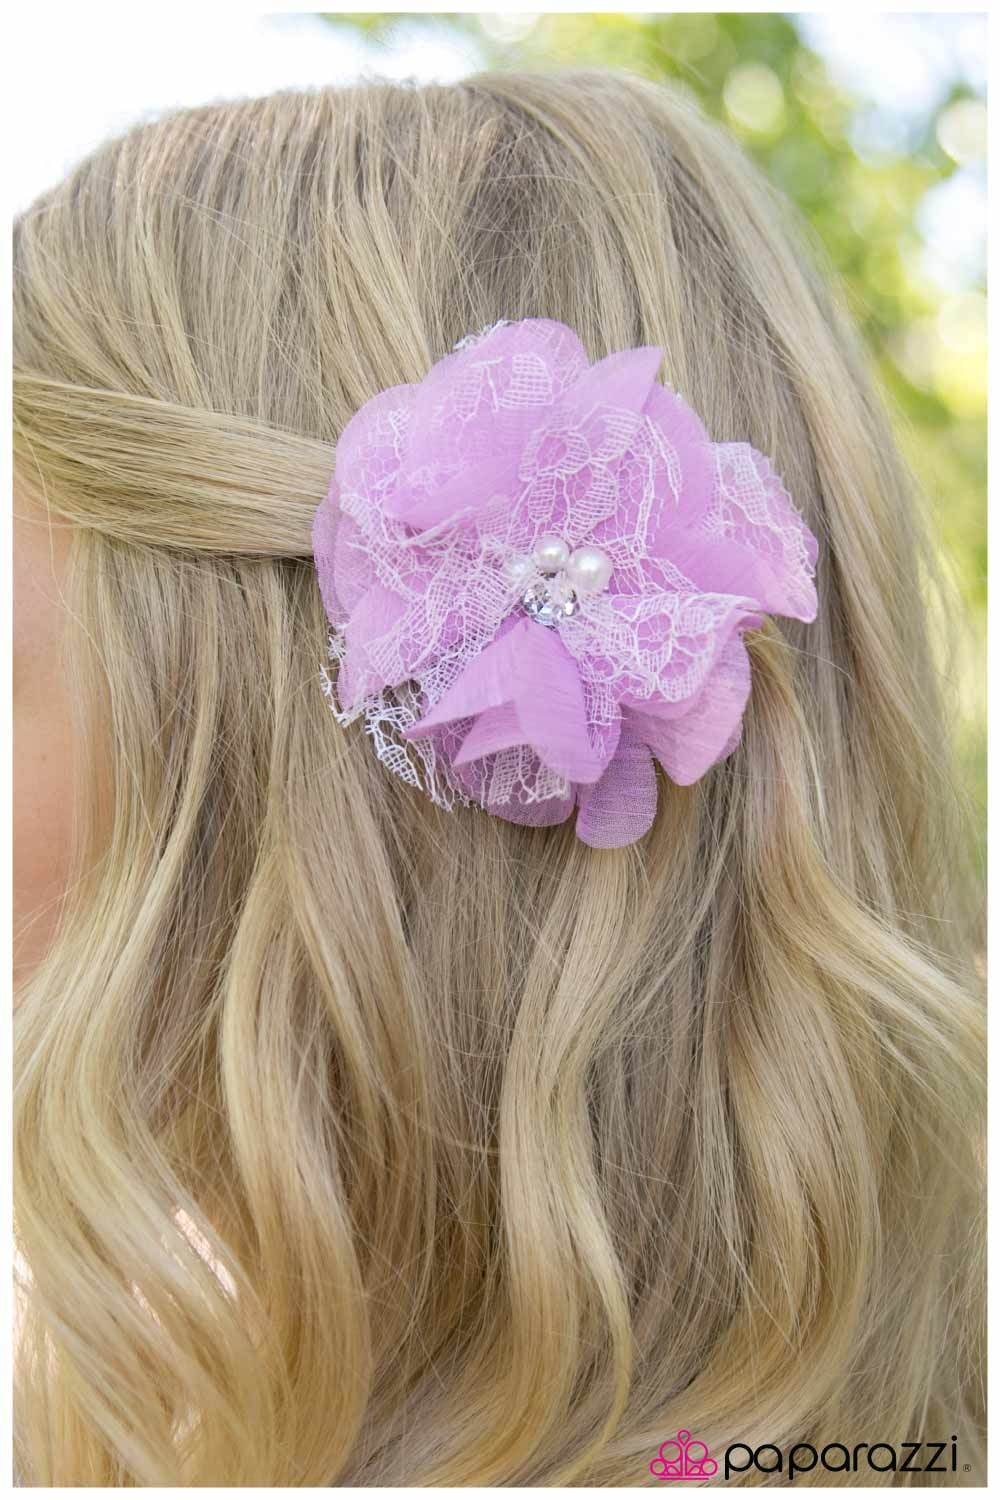 Wicked Wonders VIP Bling Hair Clip Chantilly Lace Purple Hair Clip Affordable Bling_Bling Fashion Paparazzi